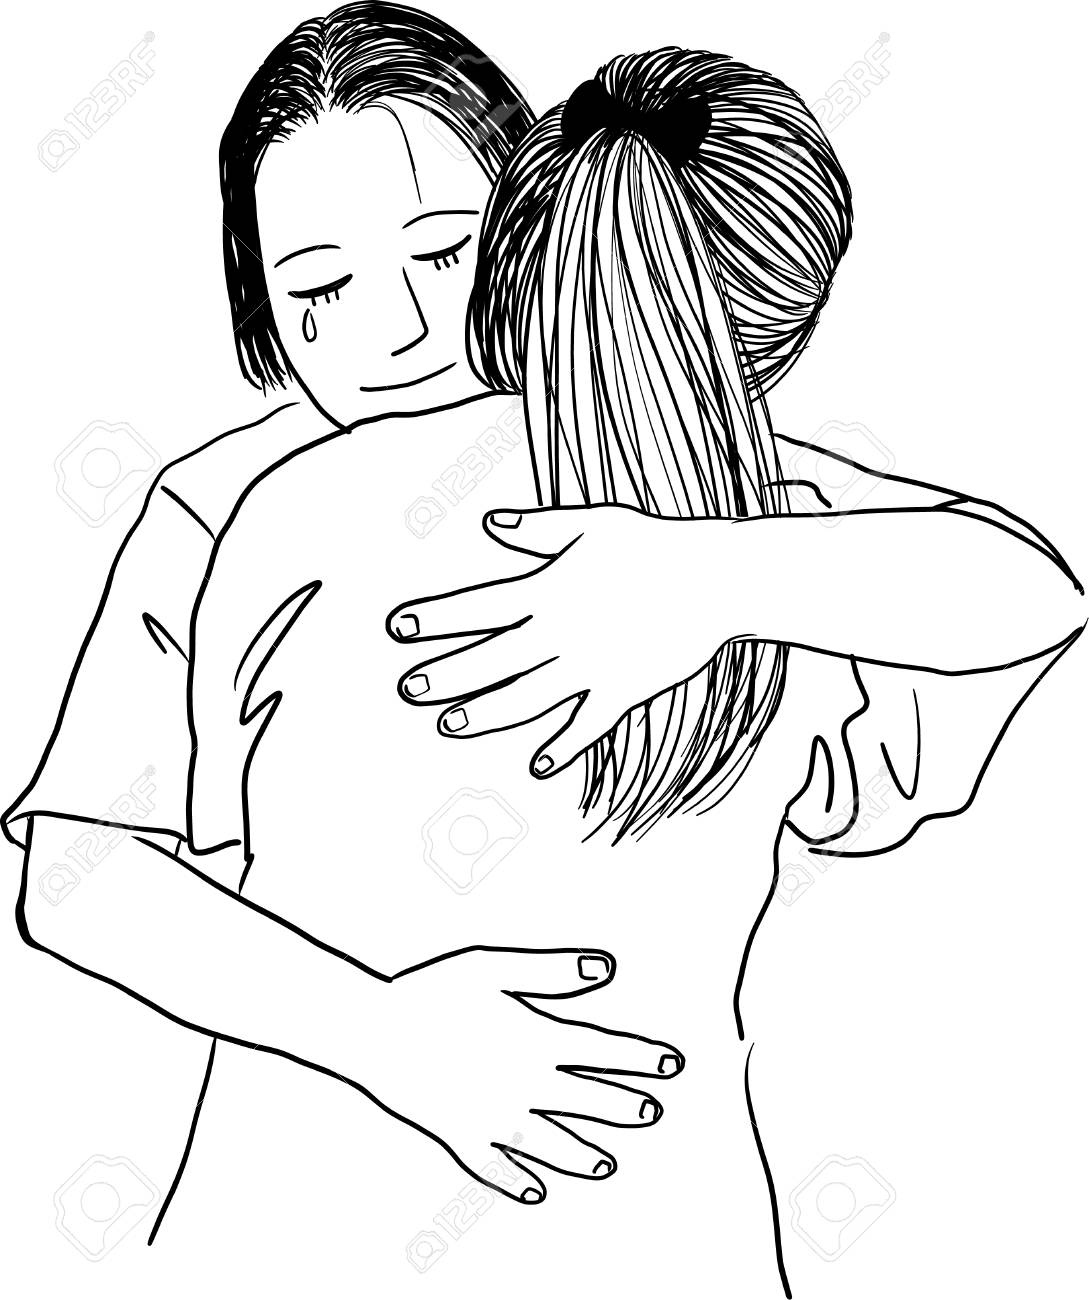 1089x1300 Drawing Of Mother Hugging Her Teenage Daughter Royalty Free